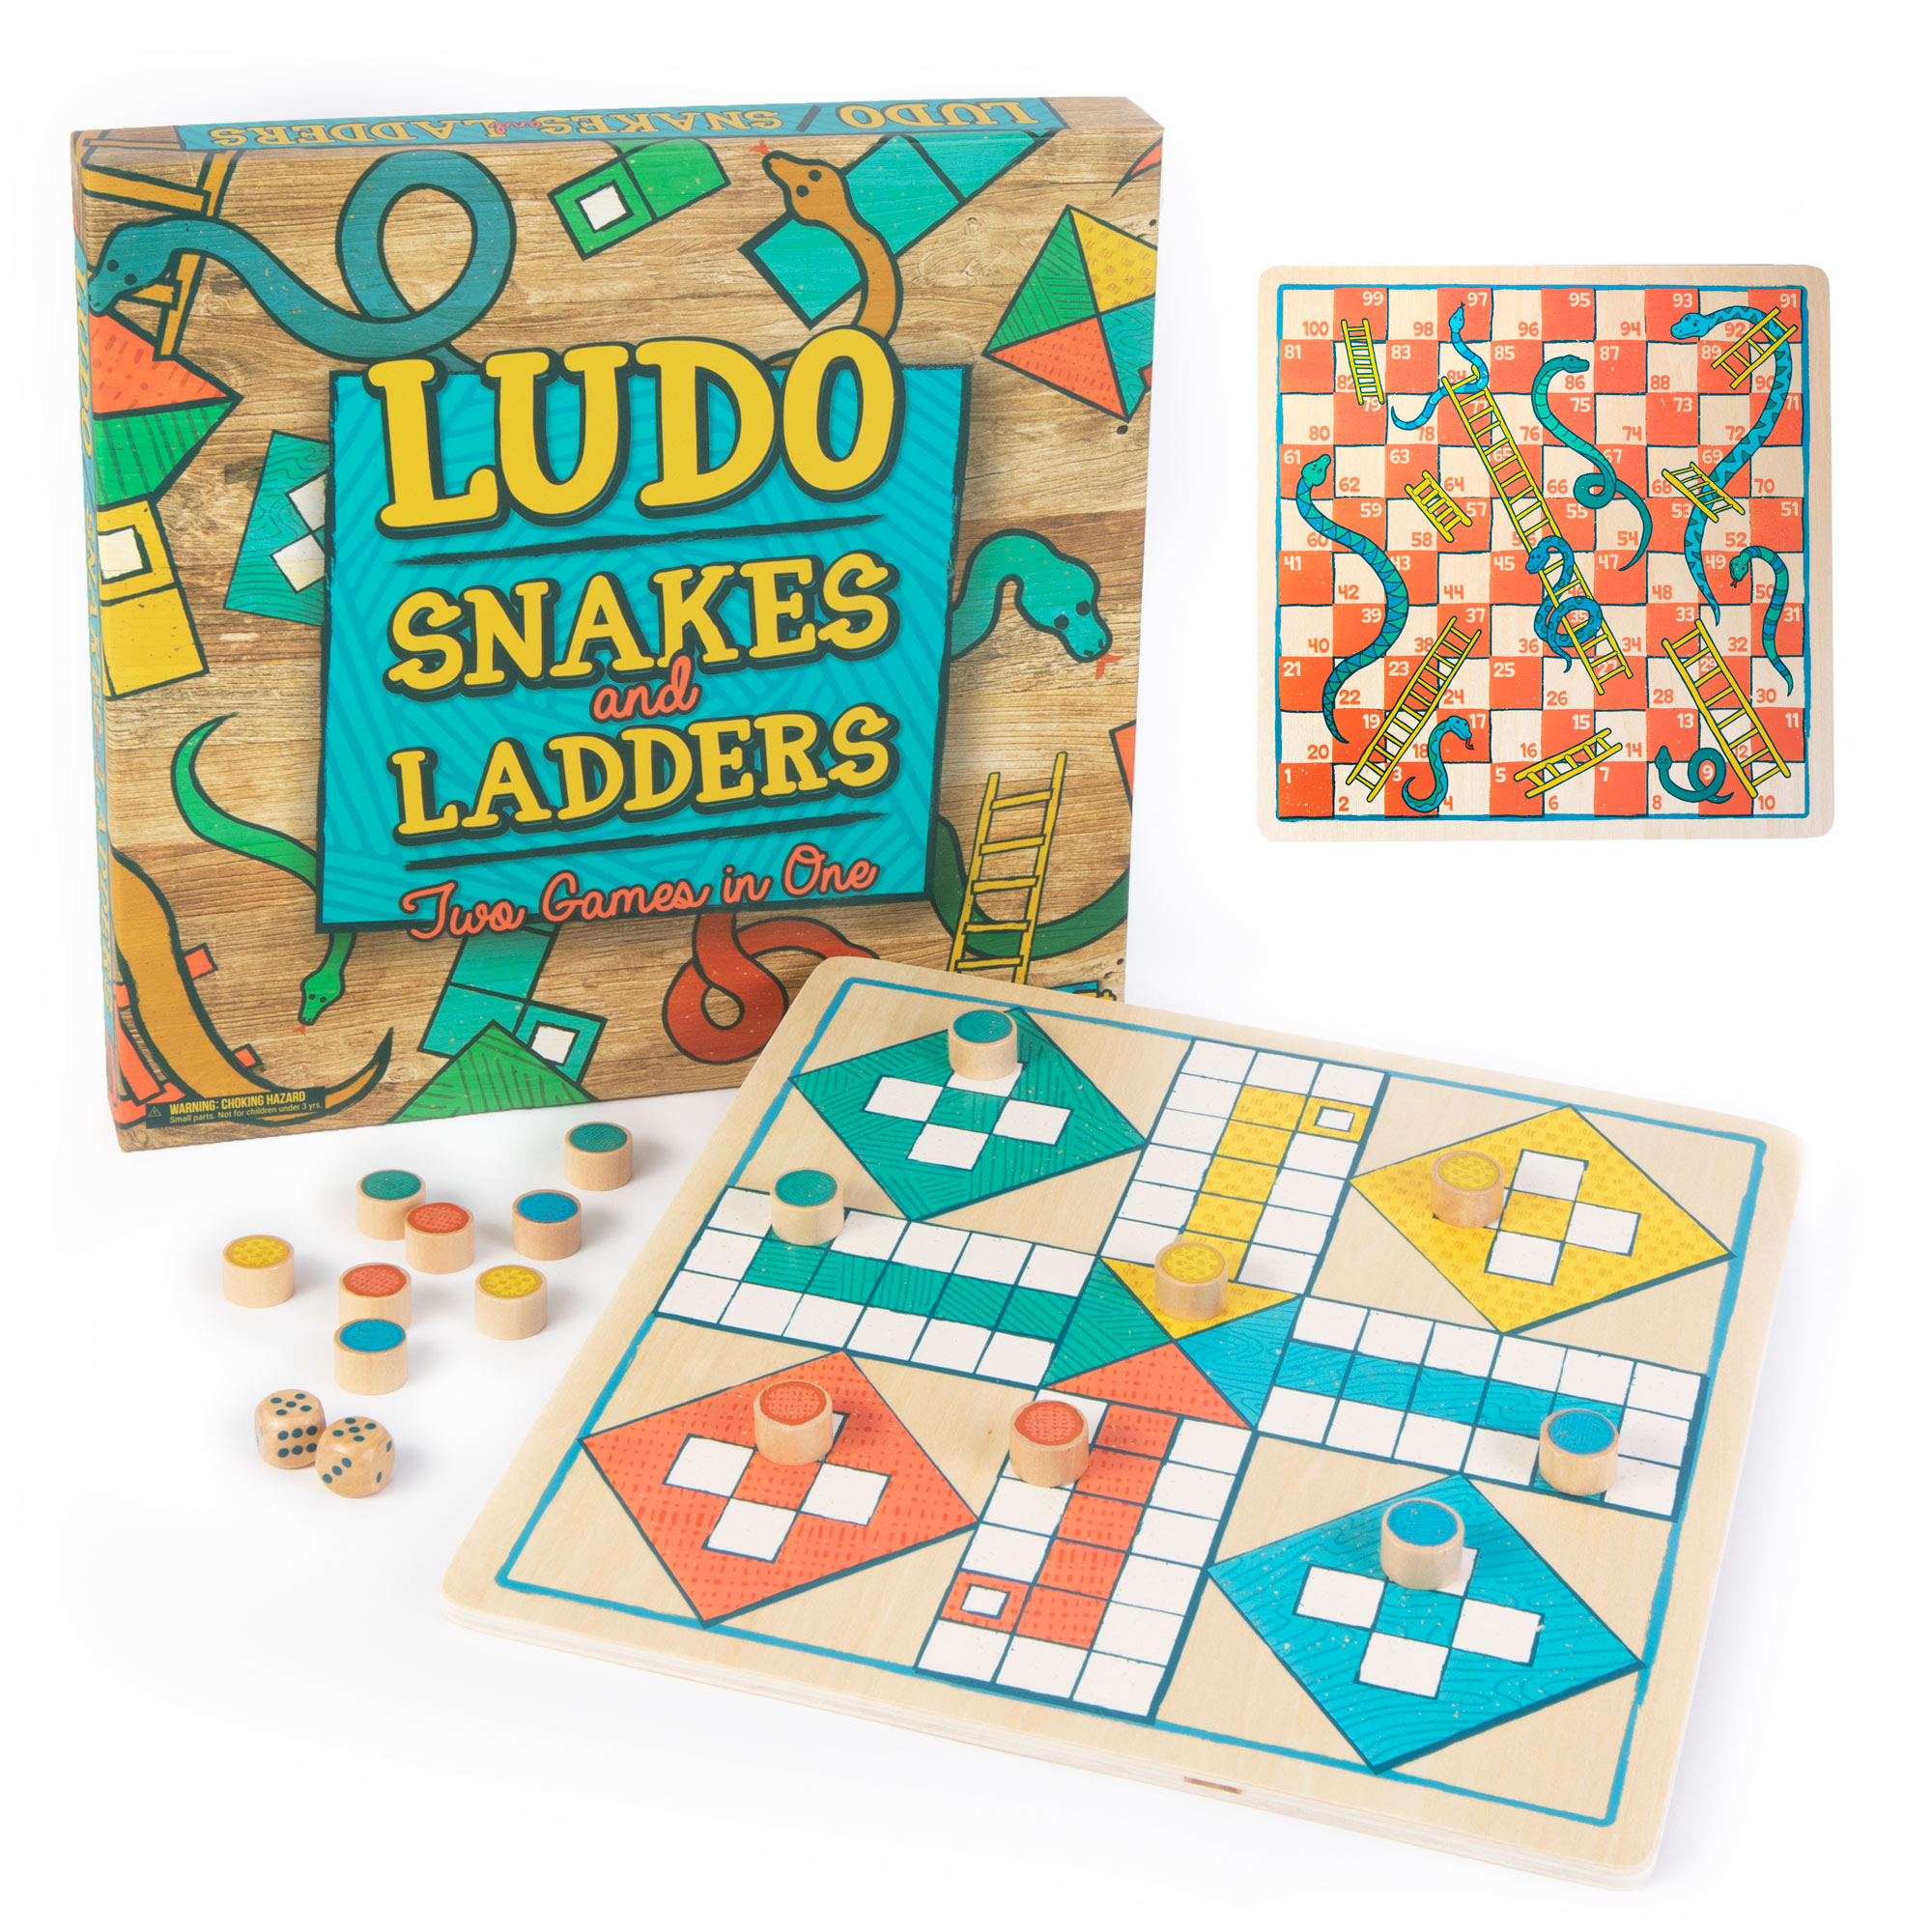 Ludo & Snakes & Ladders 2-in-1 Wooden Board Game